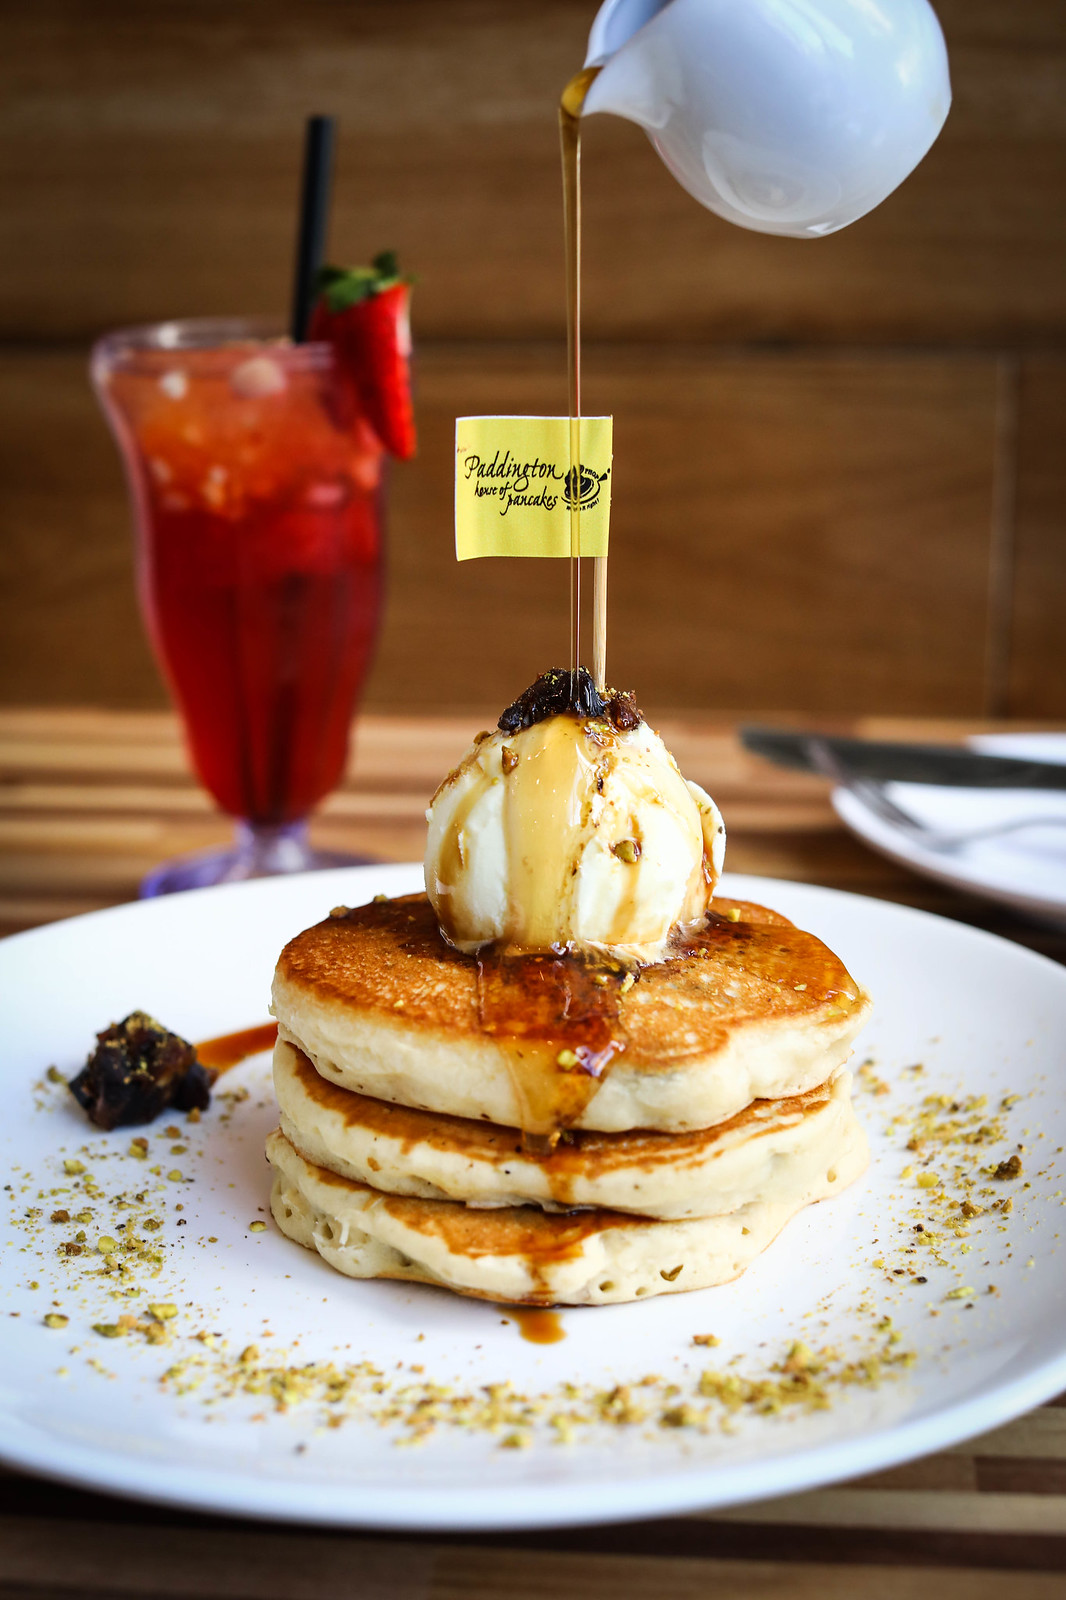 City Square Mall Food: Paddington House of Pancakes